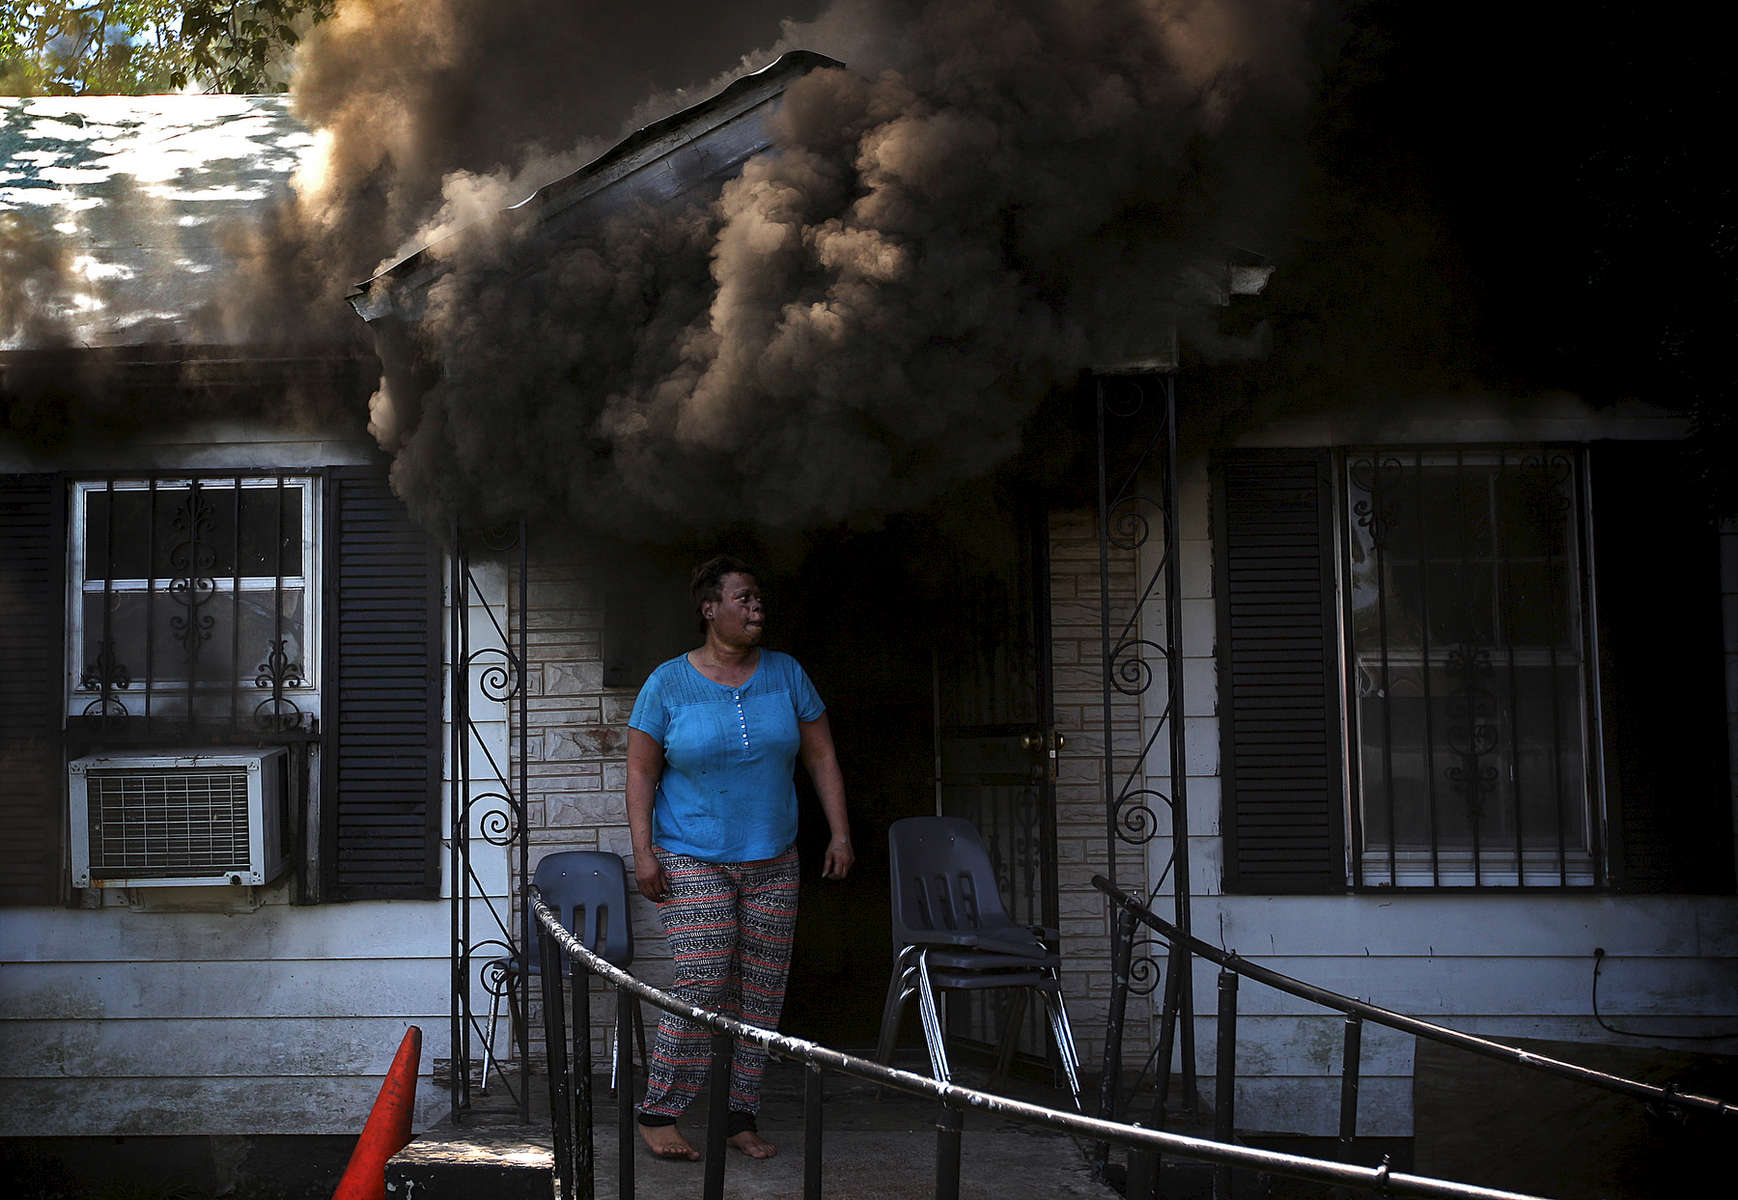 April 24, 2016 - A woman stands of the porch of a home in the 2800 block of Barron in Orange Mound as heavy smoke pours out of the front door and flames were visible in the back of the house while waiting for fire fighters to arrive. The residents, including a man in a wheel chair, escaped the home without injuries. (Mike Brown/The Commercial Appeal)